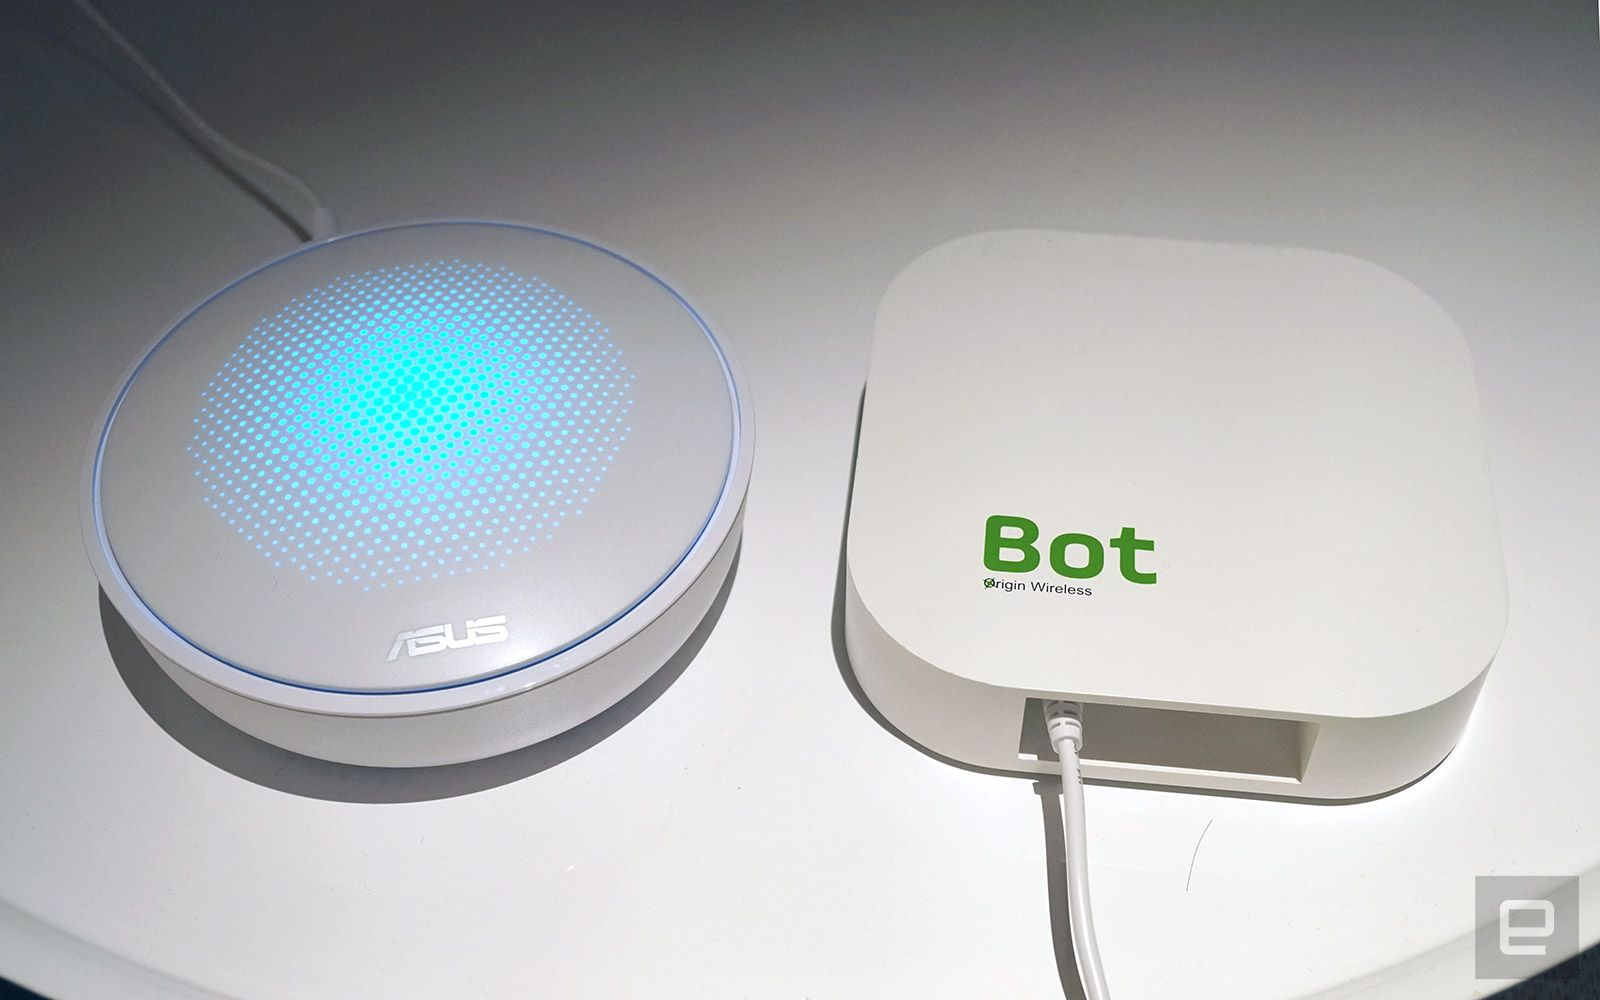 This mesh WiFi router can track motion to protect your